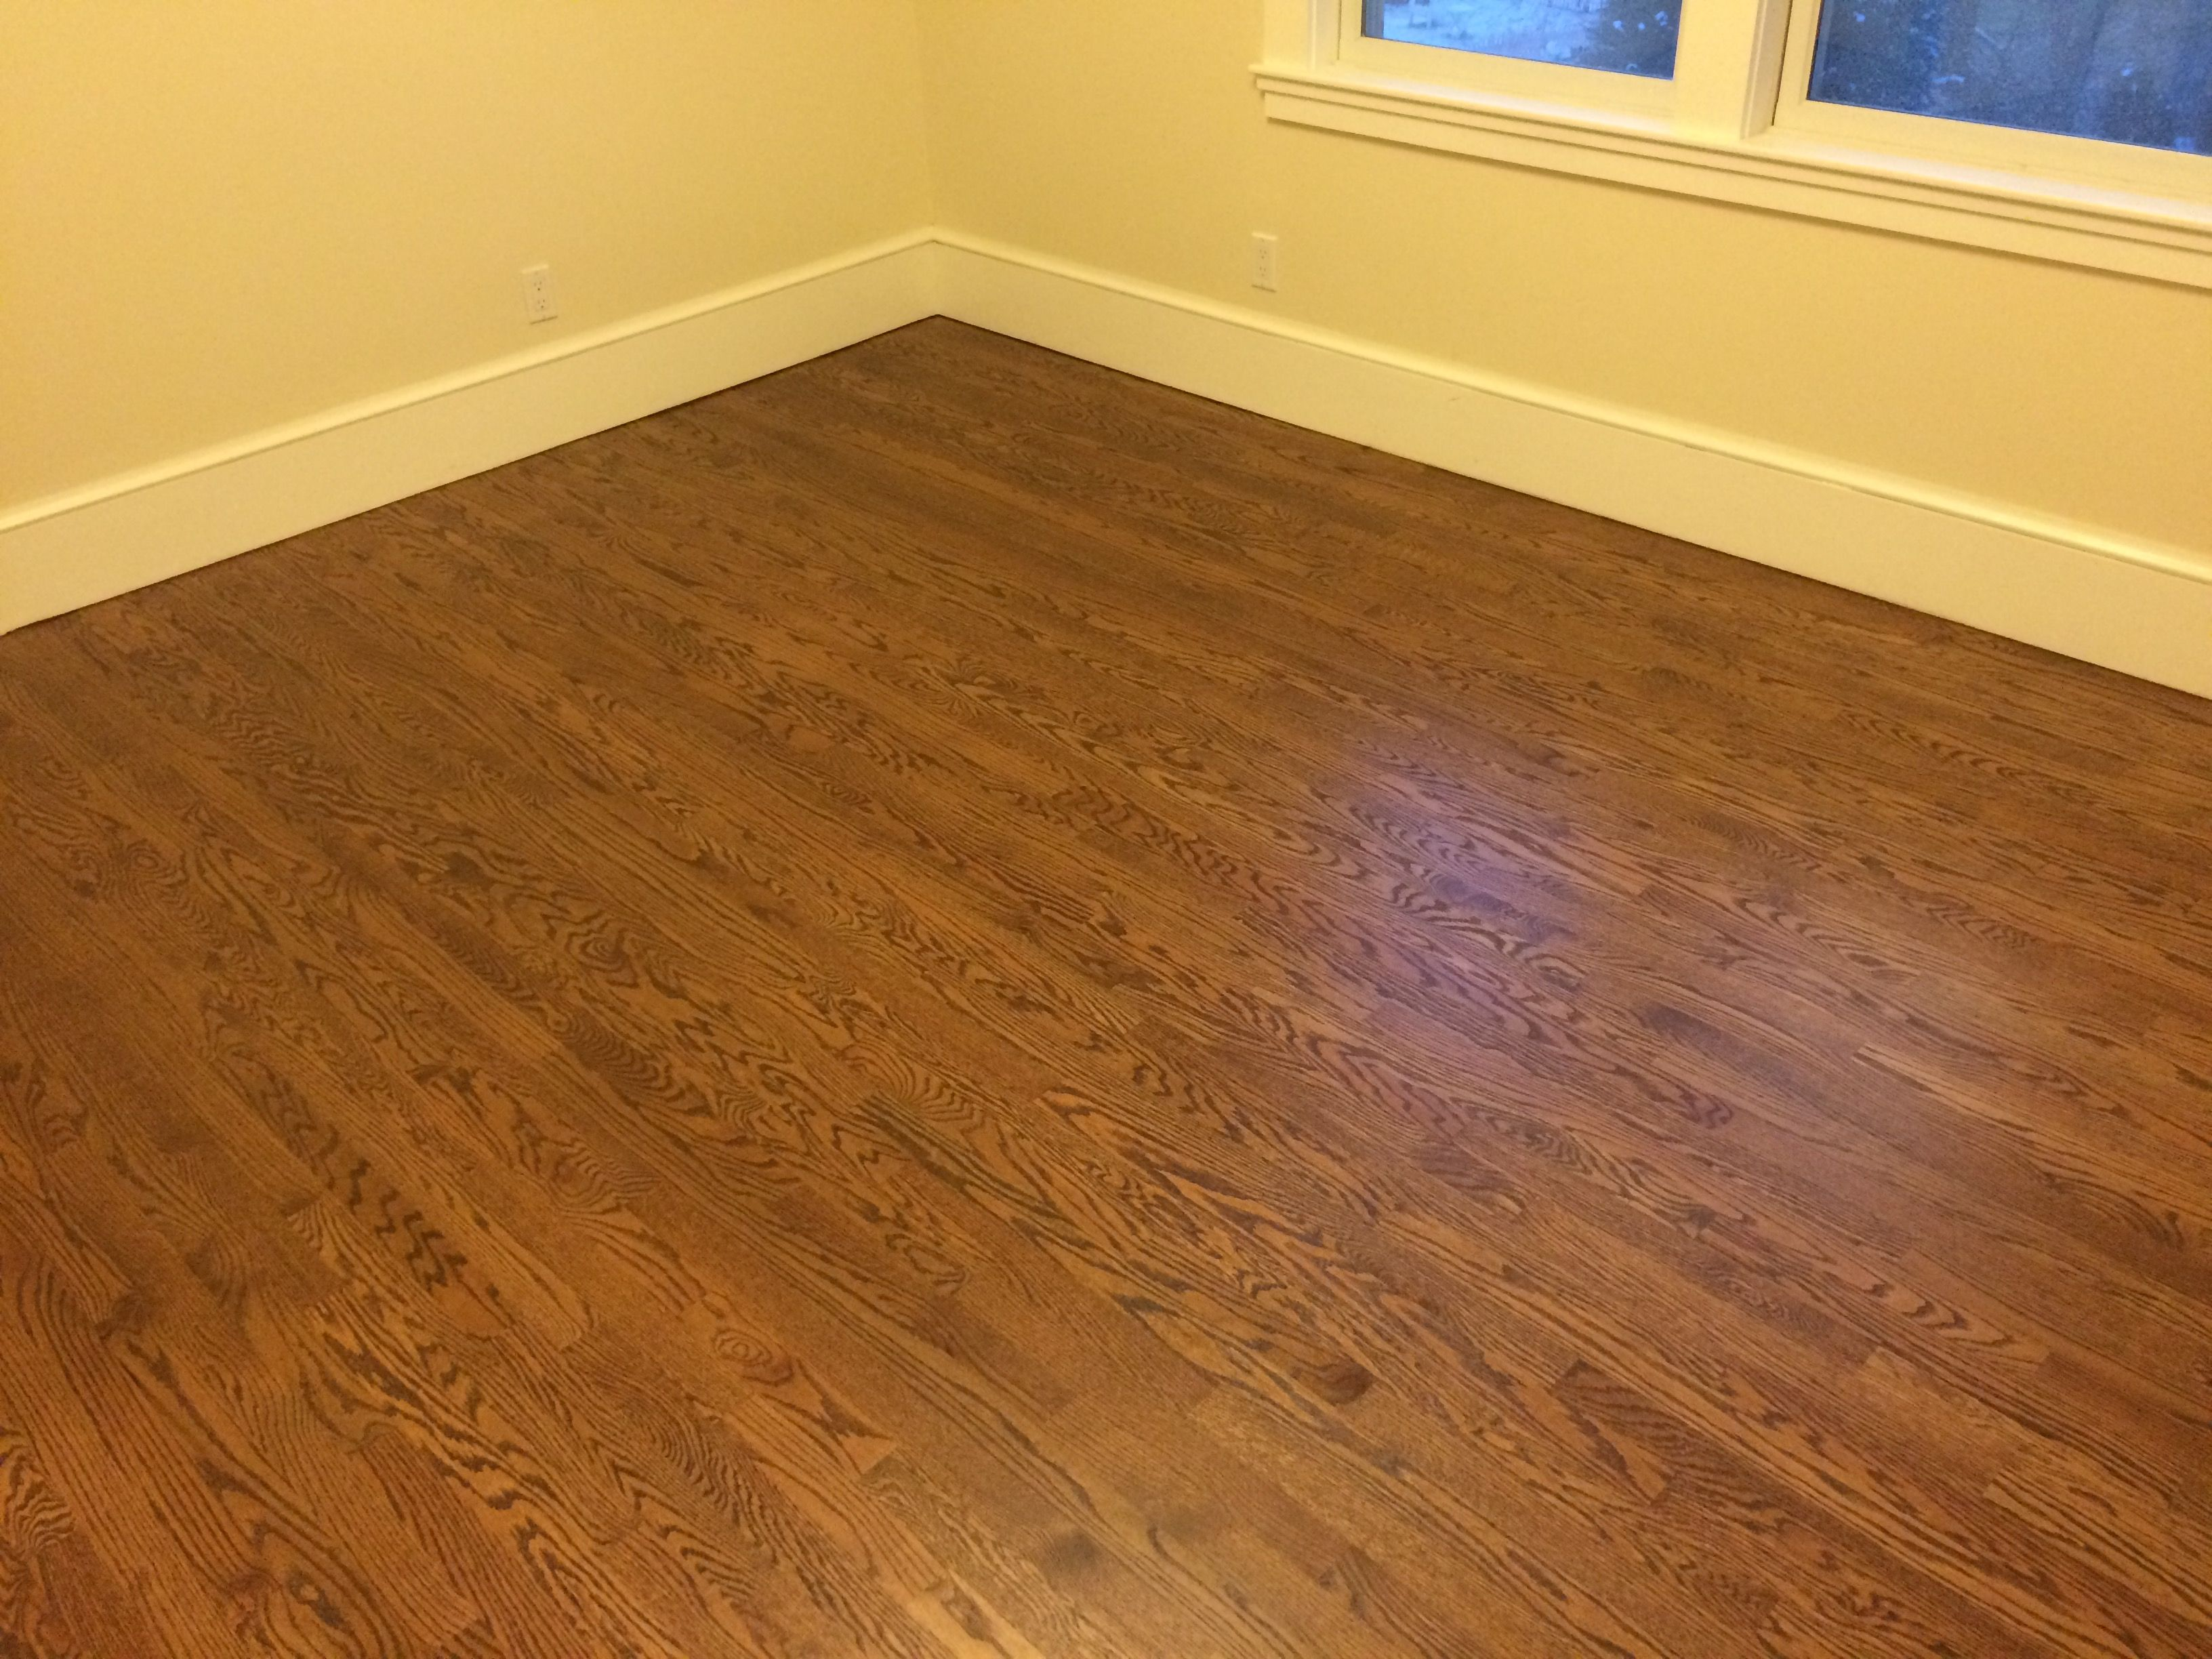 New Minwax - Special walnut over red oak hardwood floors topped with  RB42